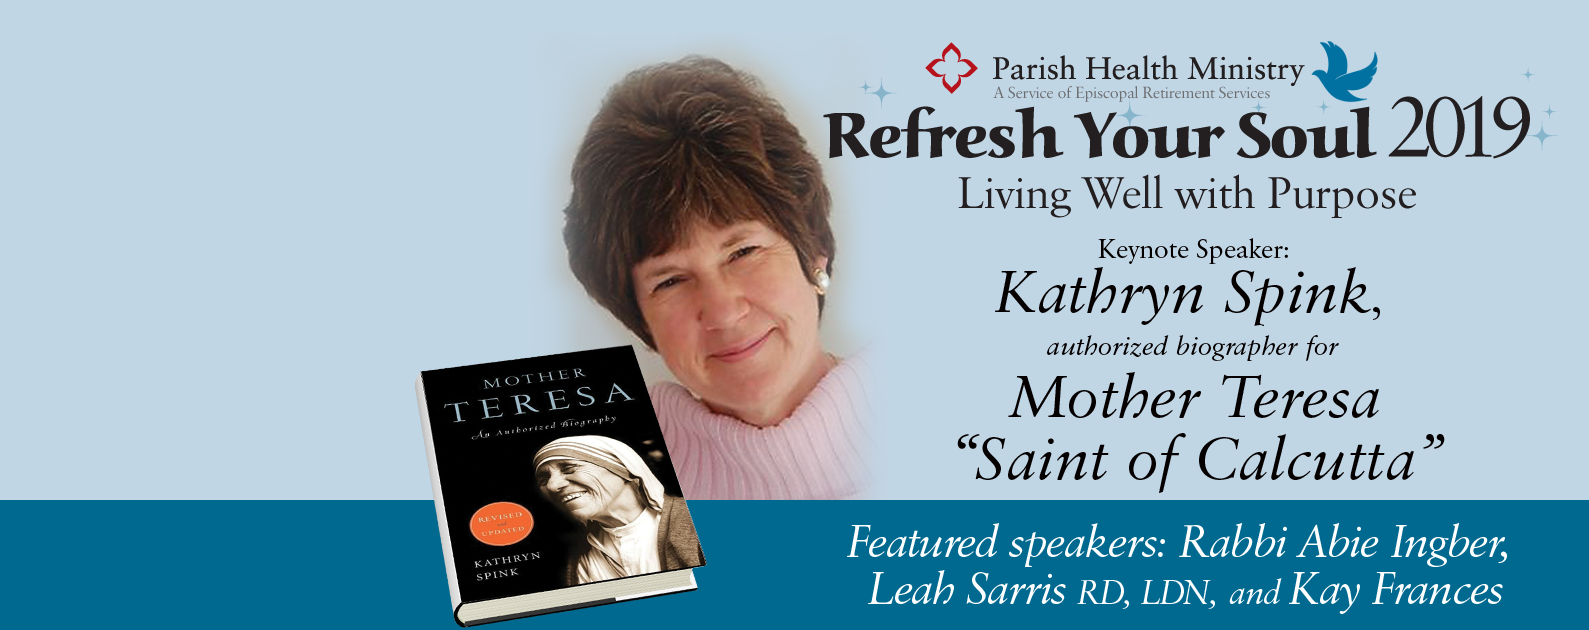 Save the Date for Refresh Your Soul 2019: Living Well with Purpose